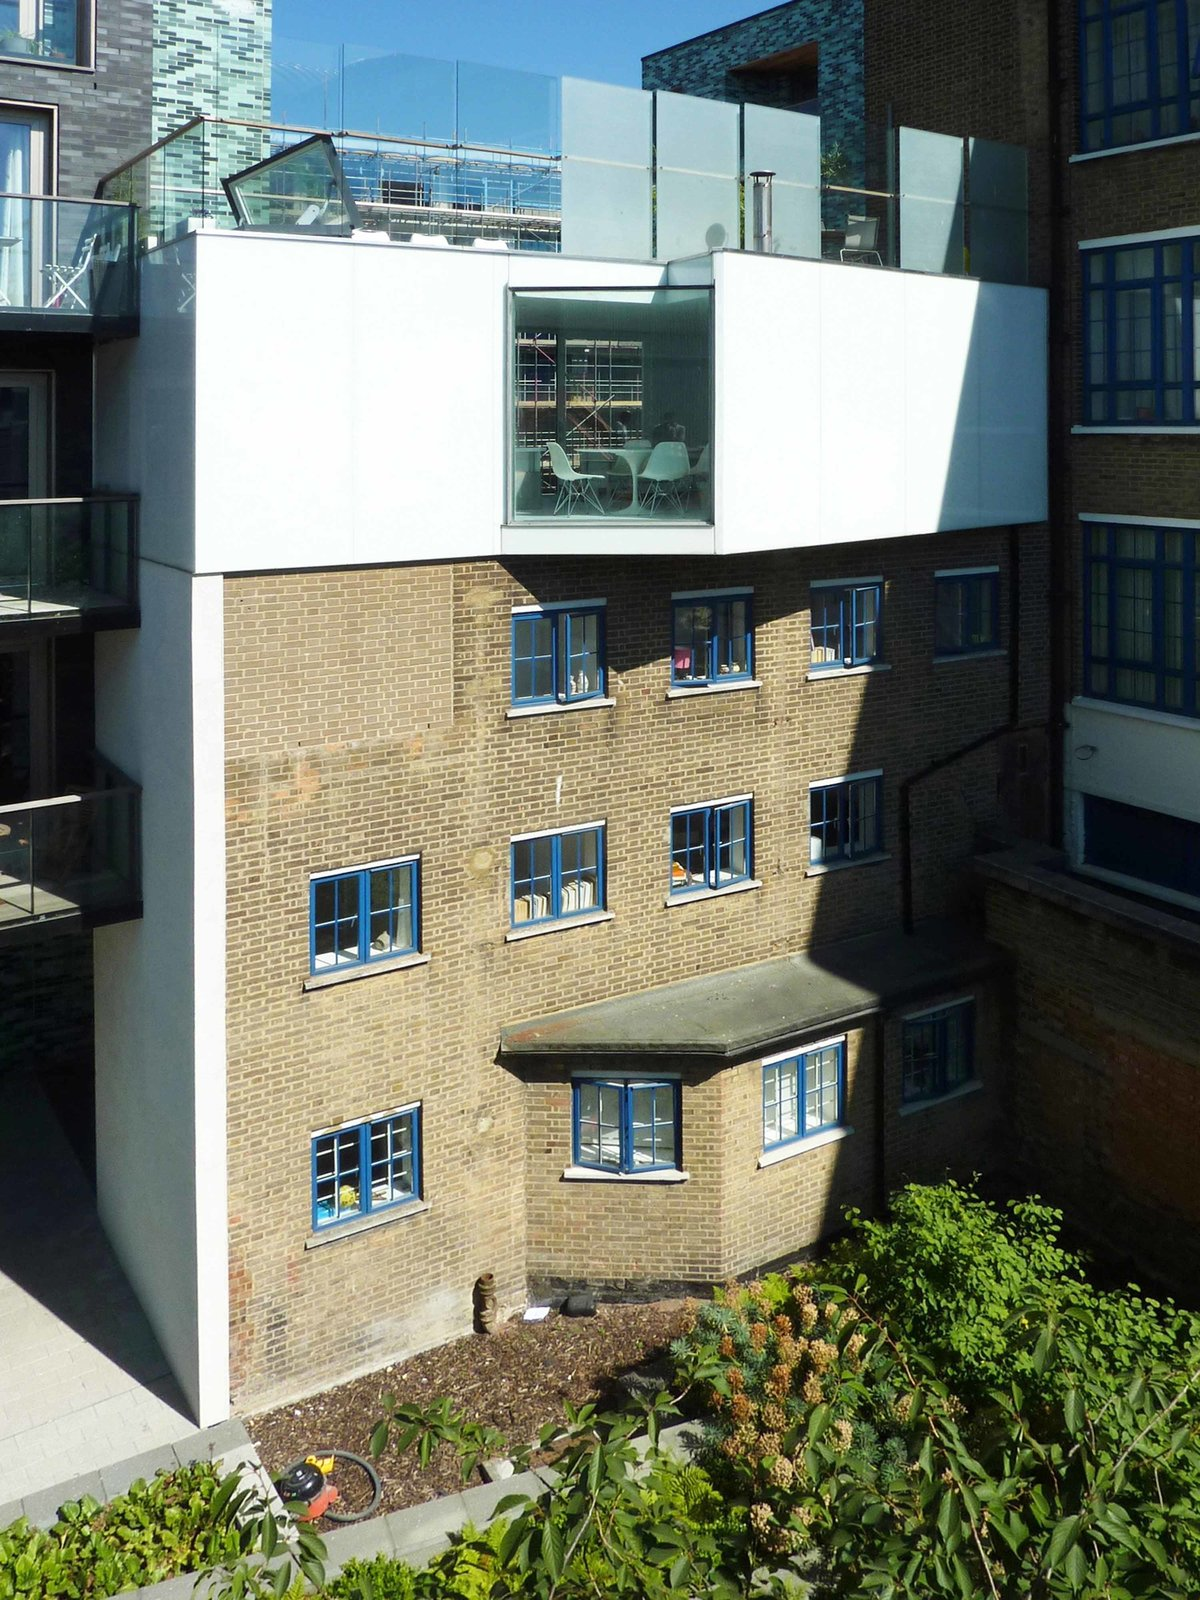 A stepped back view shows the confined site, bracketed by multi-unit residential buildings. The lone window is angled to grab maximum light while protecting privacy.  Photo 2 of 7 in A Tiny Live/Work Addition Crowns a Historic London House